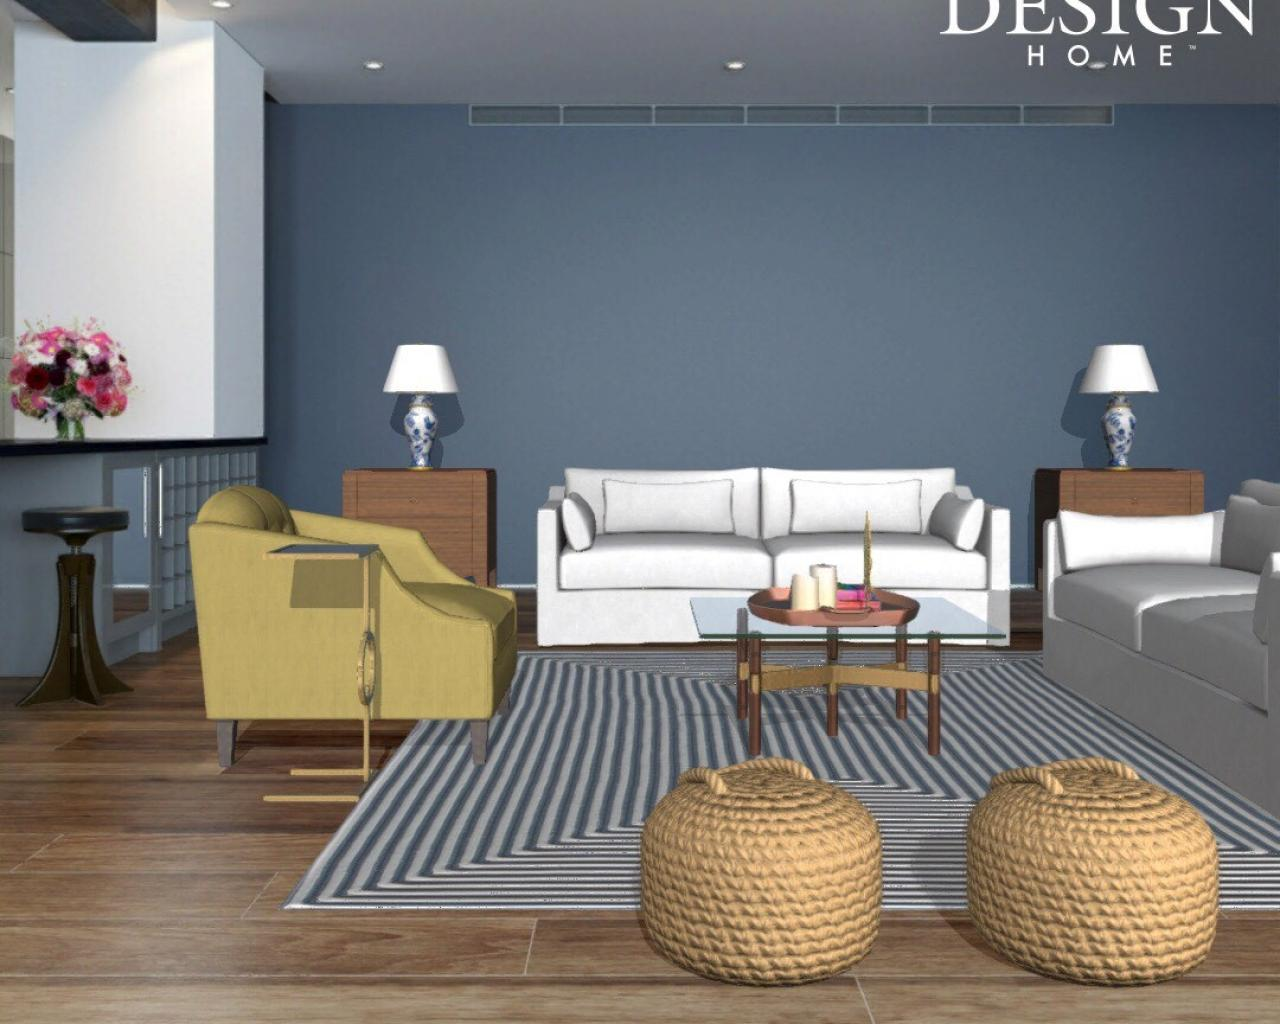 Be an interior designer with design home app hgtv 39 s for Interior designs home